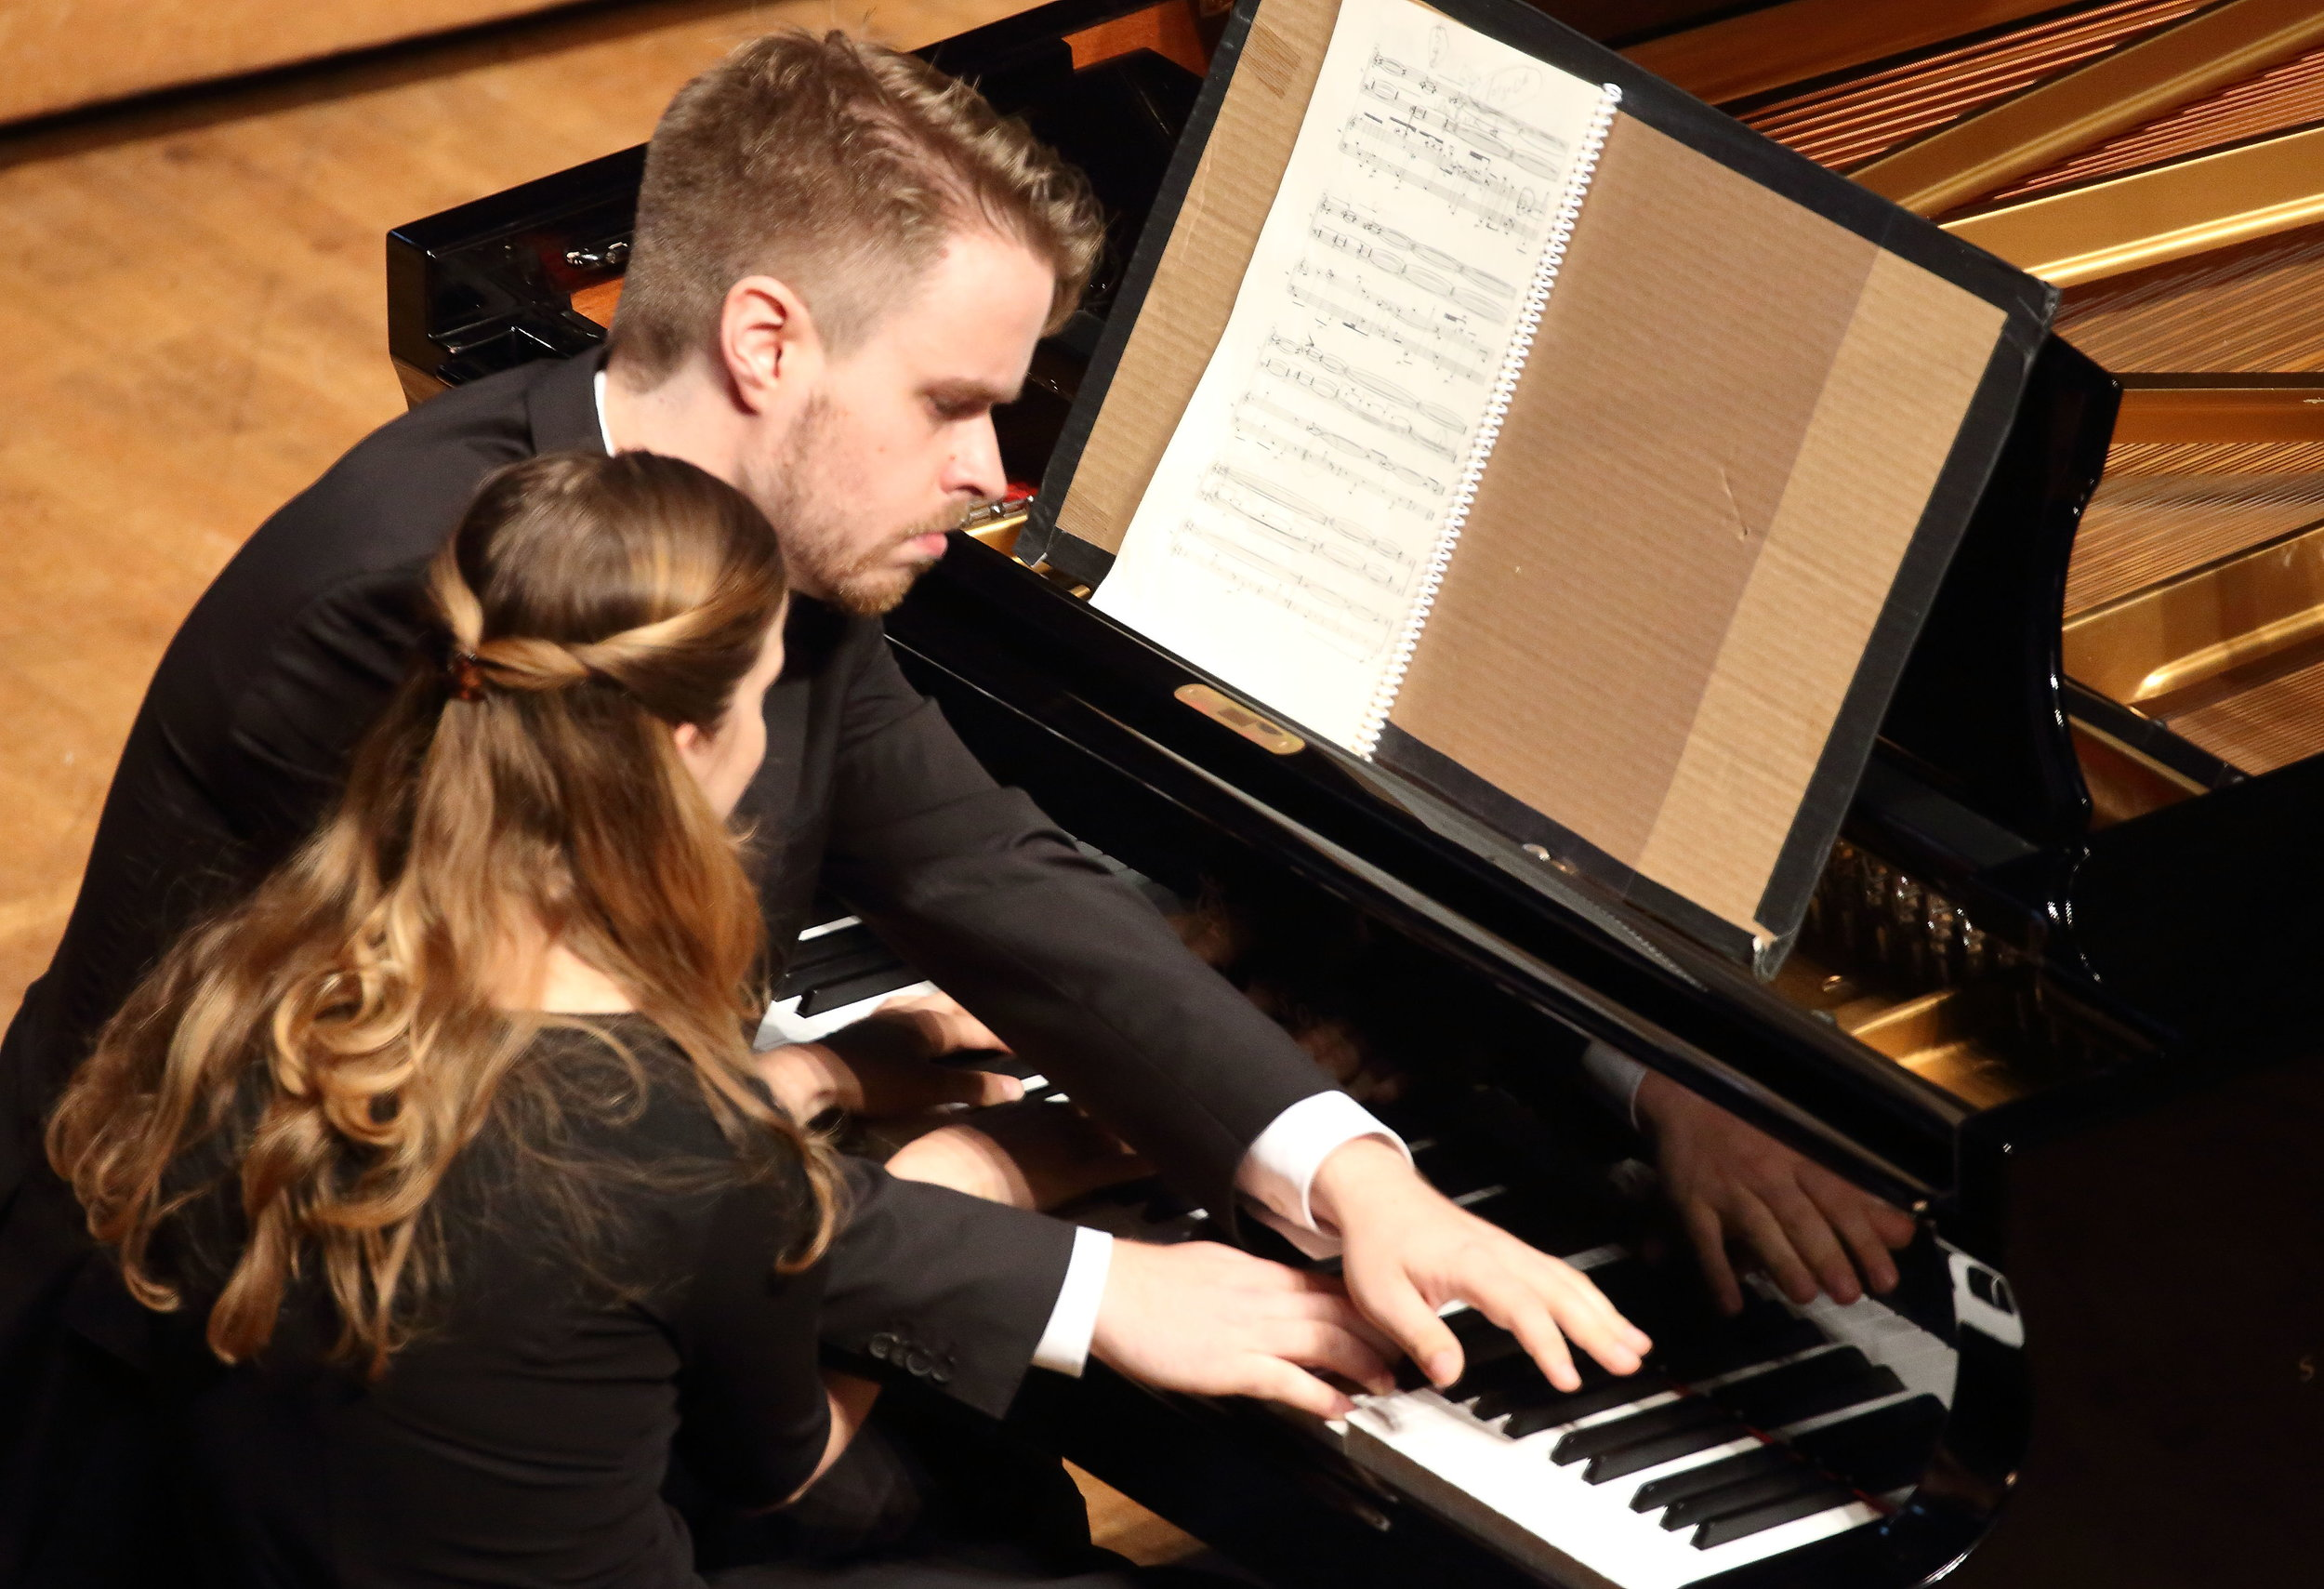 Léon Bernsdorf and Elizabeth Dorman perform Amy Williams's Abstract Art 1 and 2 in Ozawa Hall, Saturday, Aug. 12, as part of the Festival of Contemporary Music. Hilary Scott photograph